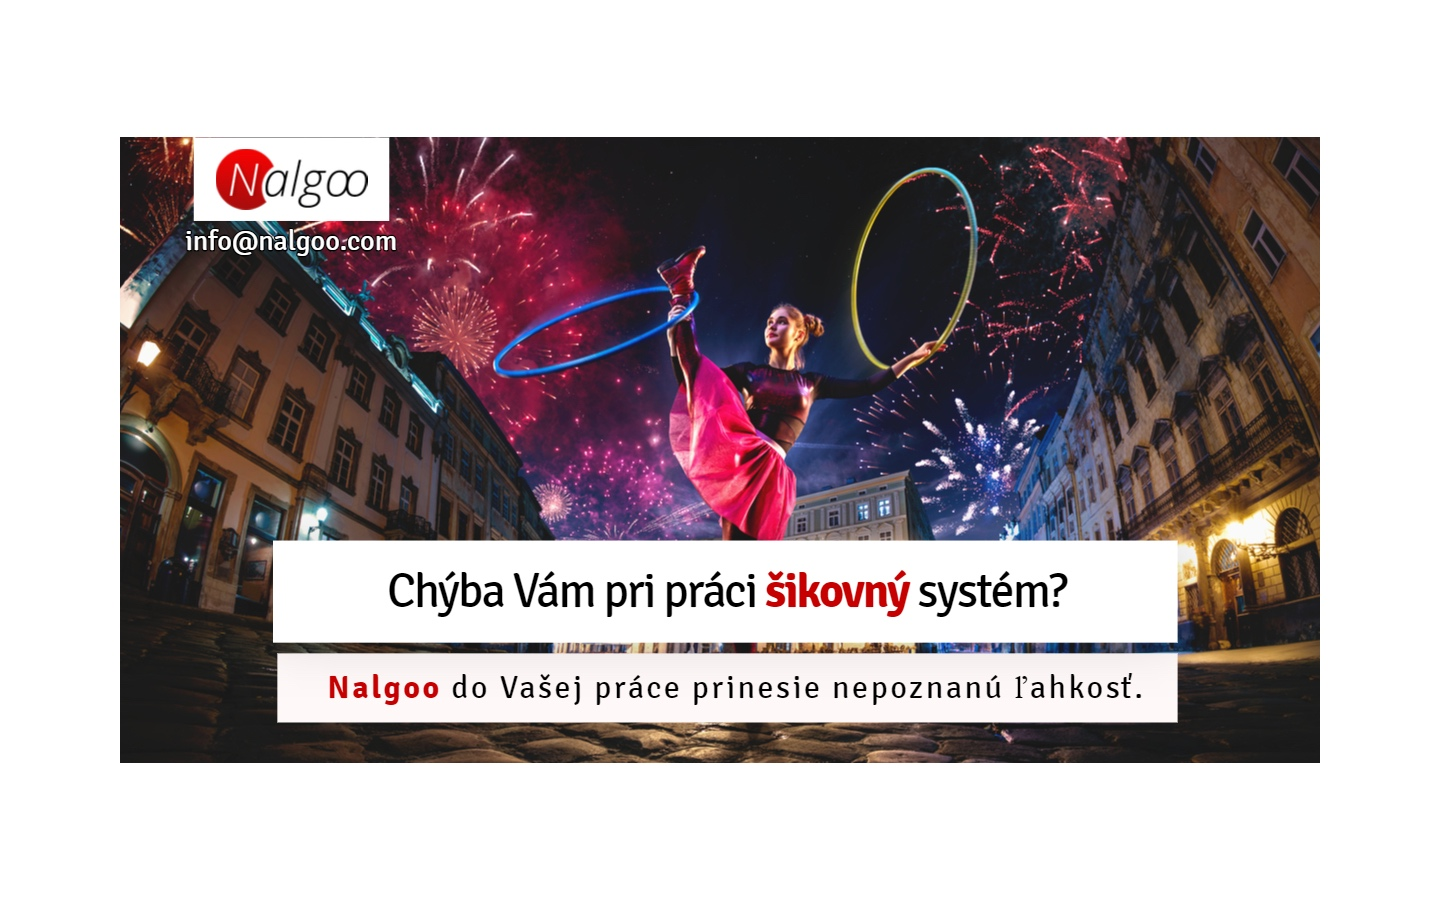 Campaign for @Nalgoo